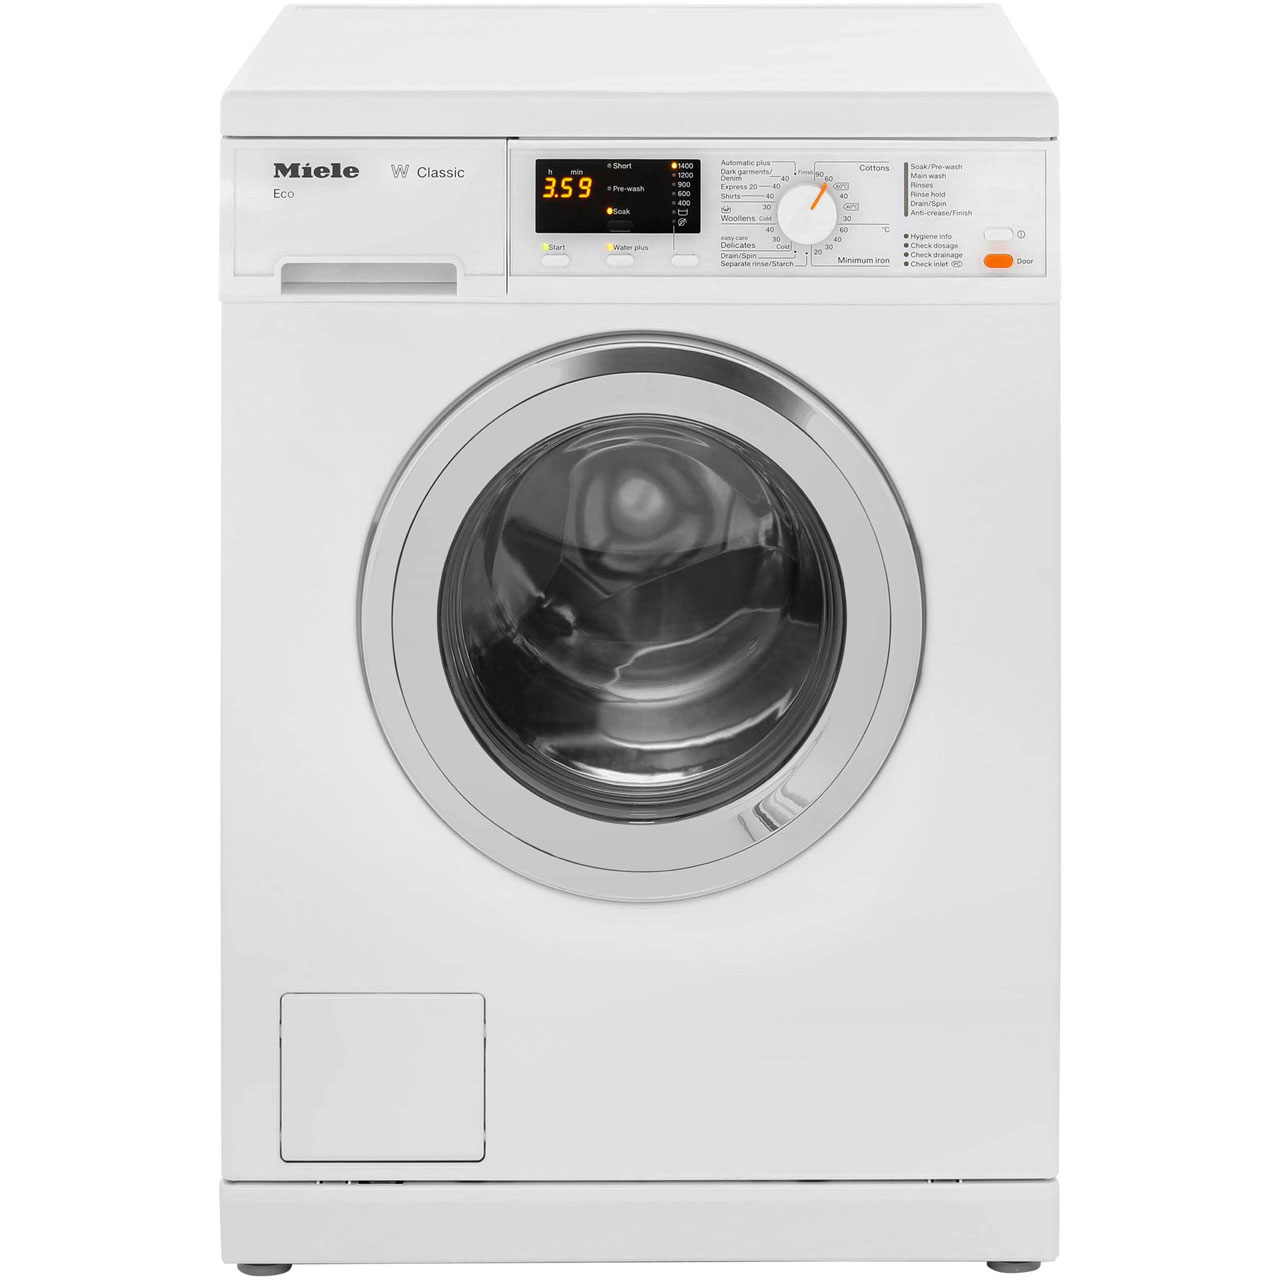 miele w classic wda101 7kg washing machine white 87912. Black Bedroom Furniture Sets. Home Design Ideas